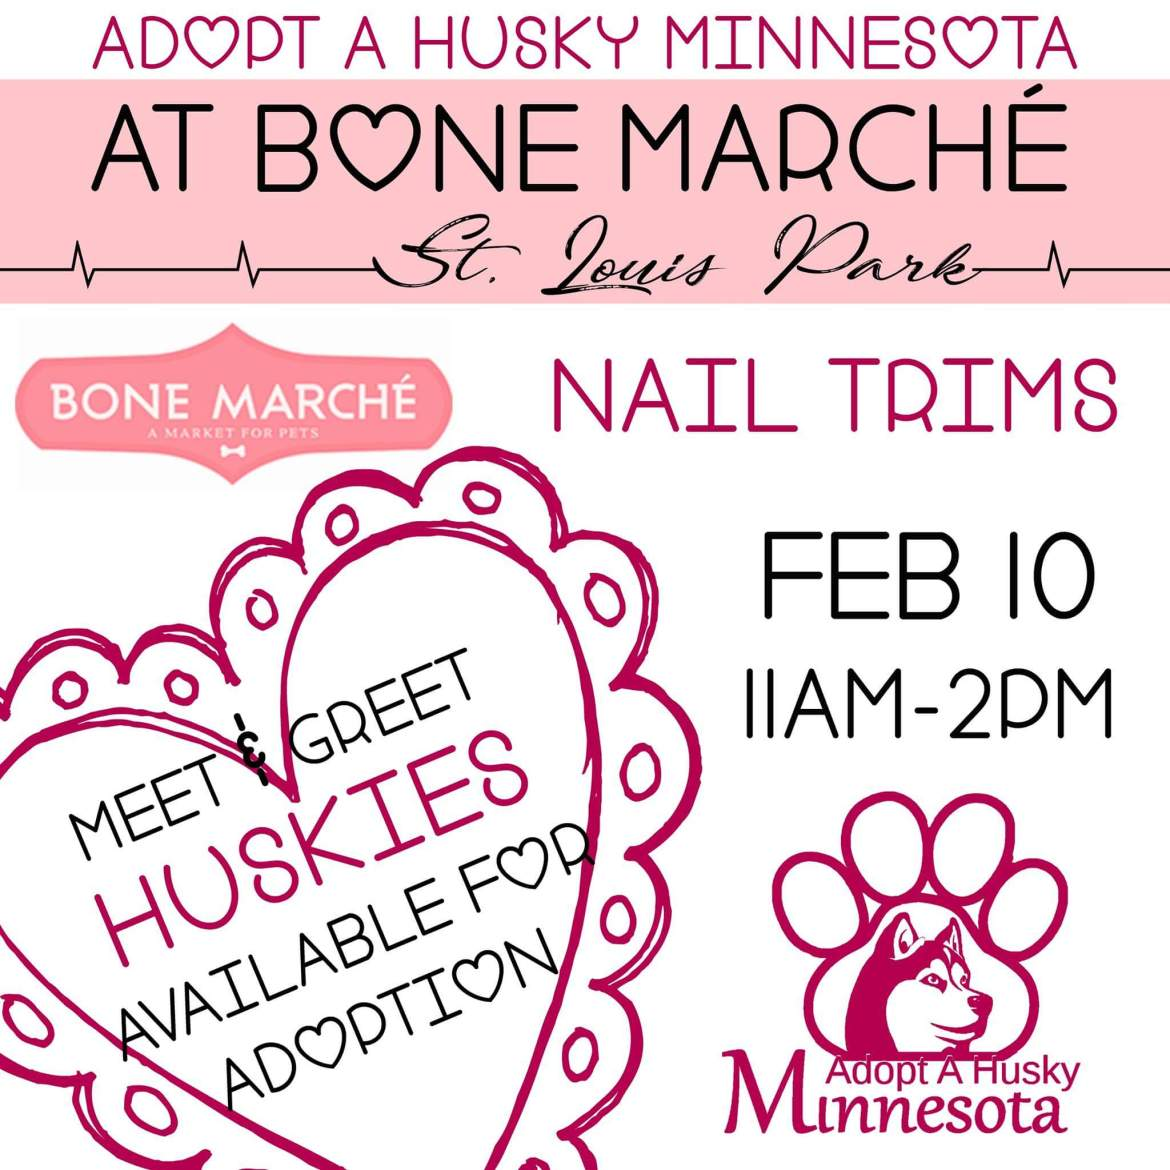 Adopt A Husky Minnesota at Bone Marché in St. Louis Park